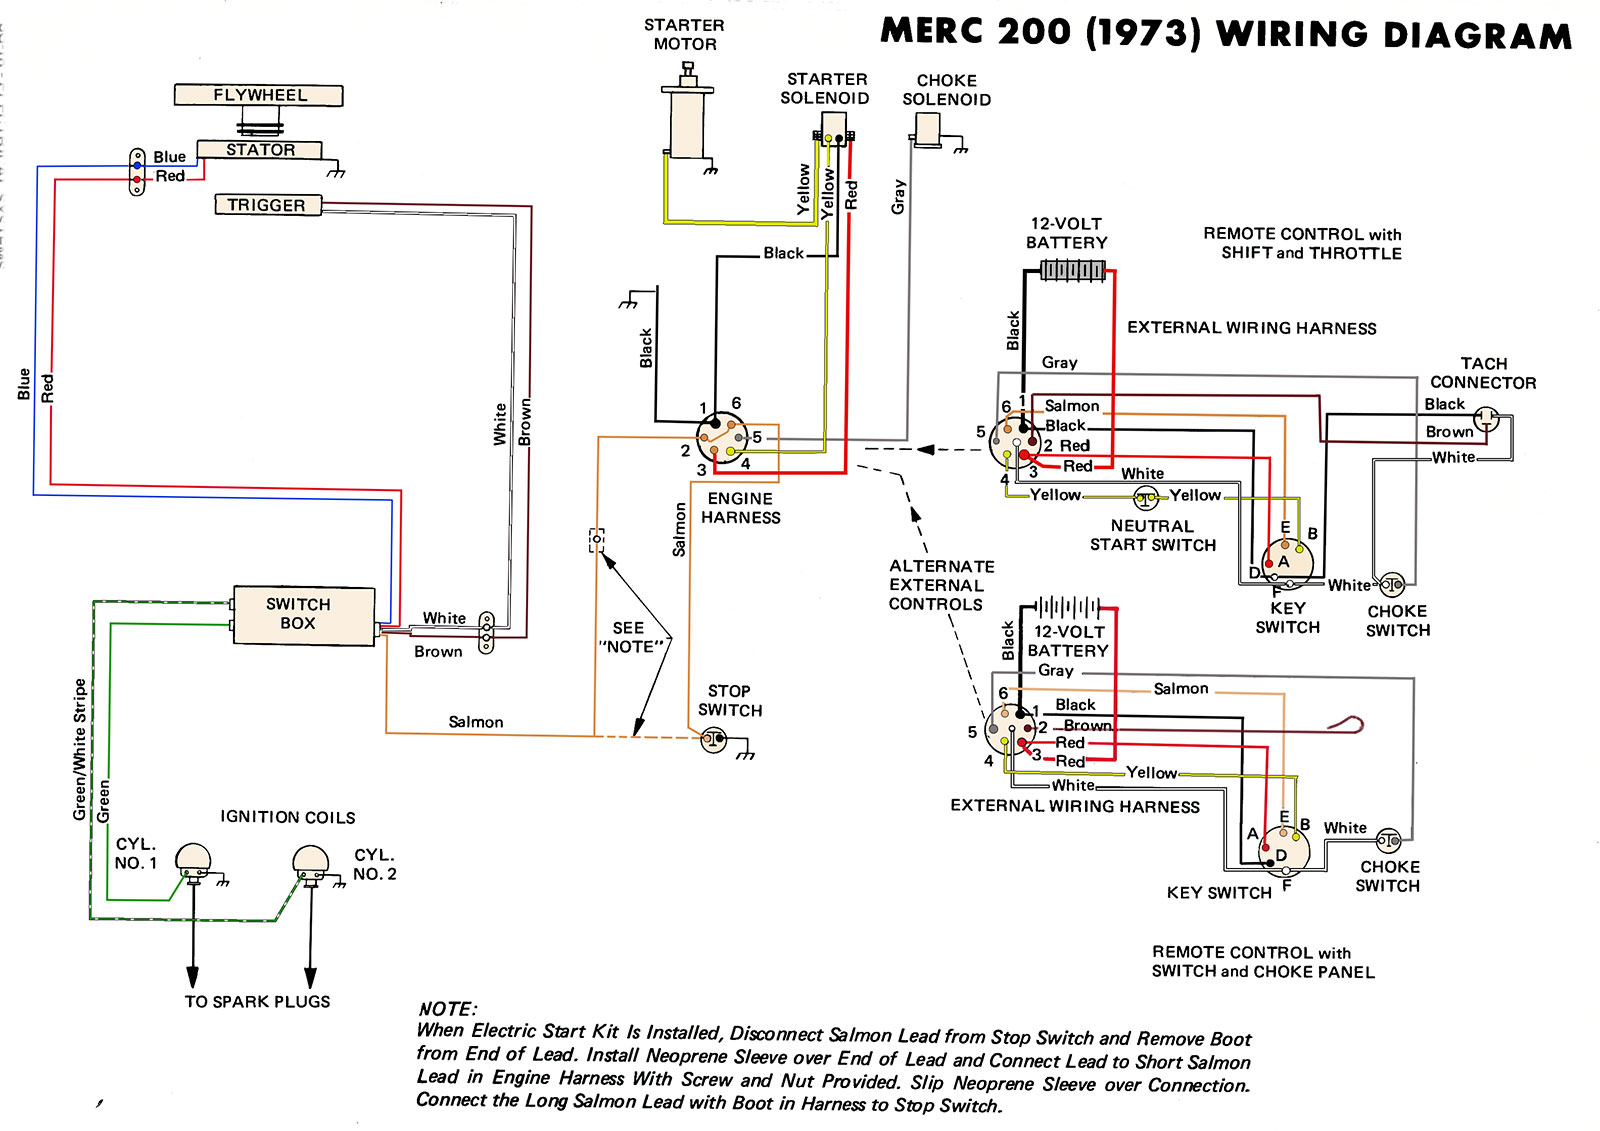 outboard wiring diagrams zd 9865  125 hp force outboard wiring diagram also mercury 40 hp outboard motor wiring diagrams 125 hp force outboard wiring diagram